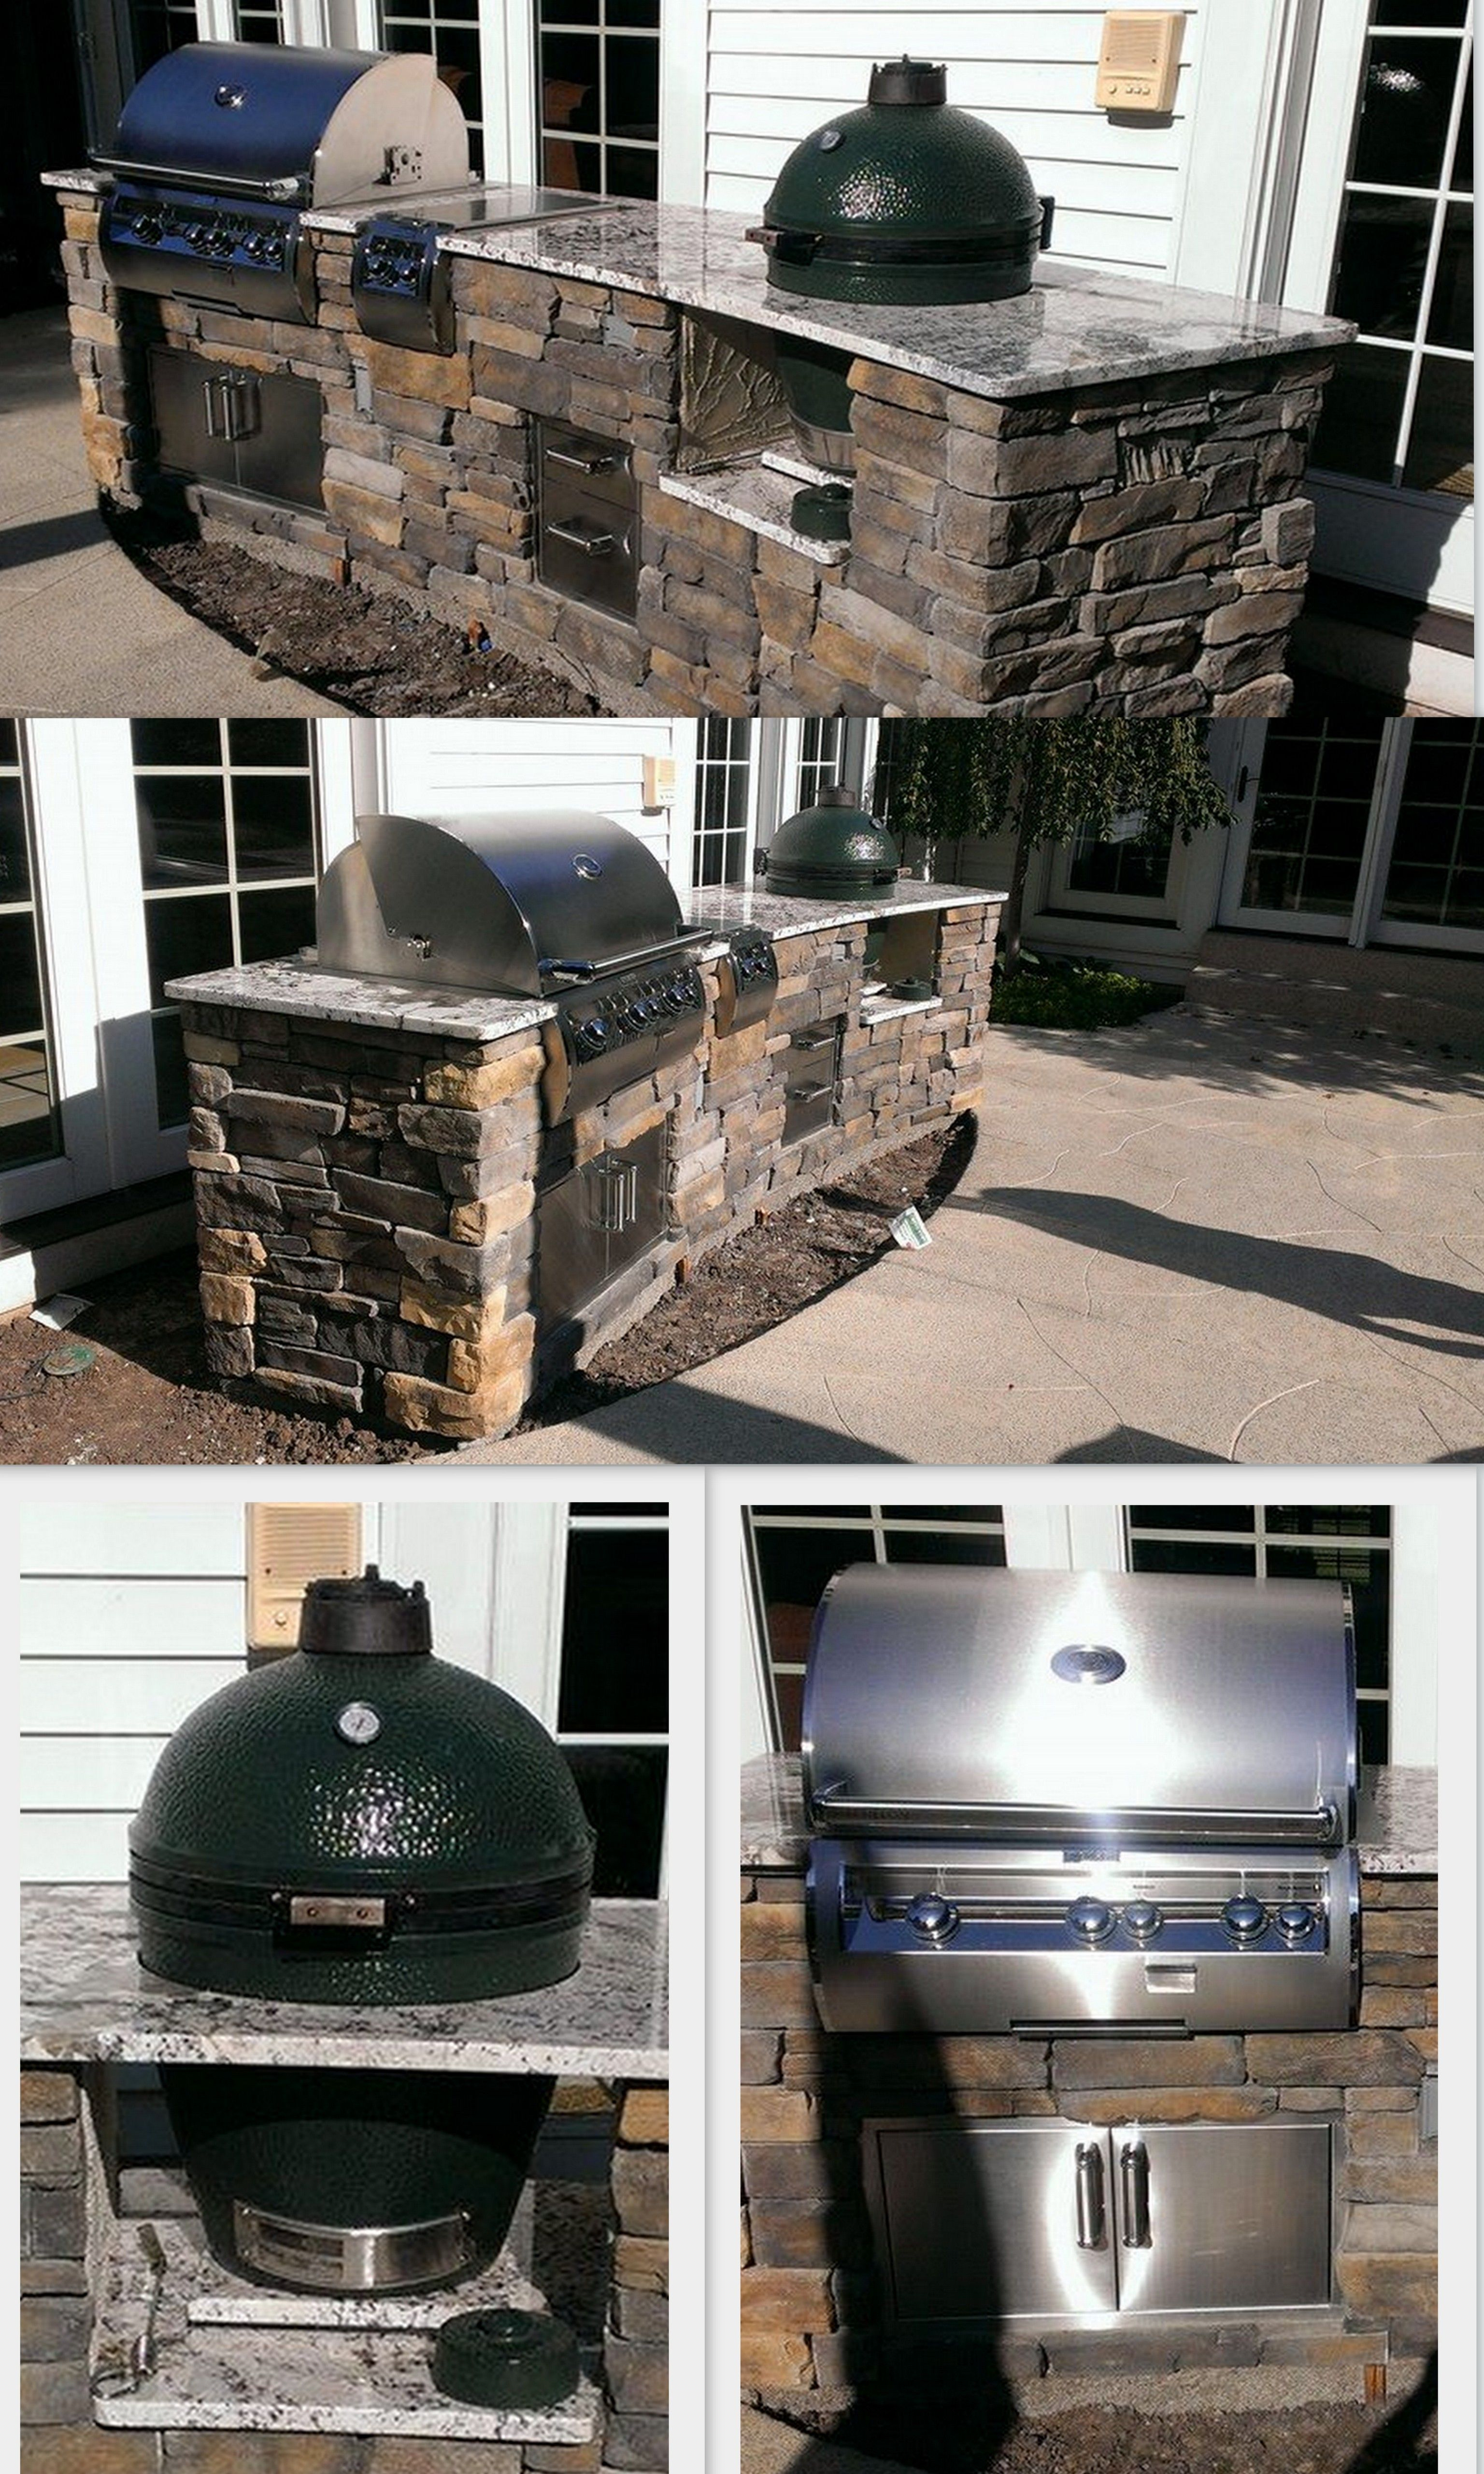 Custom Outdoor Kitchen With Gas Grill And Big Green Egg Built In I Want To Substitute A Pizza Oven Ins Small Outdoor Kitchens Outdoor Kitchen Backyard Kitchen